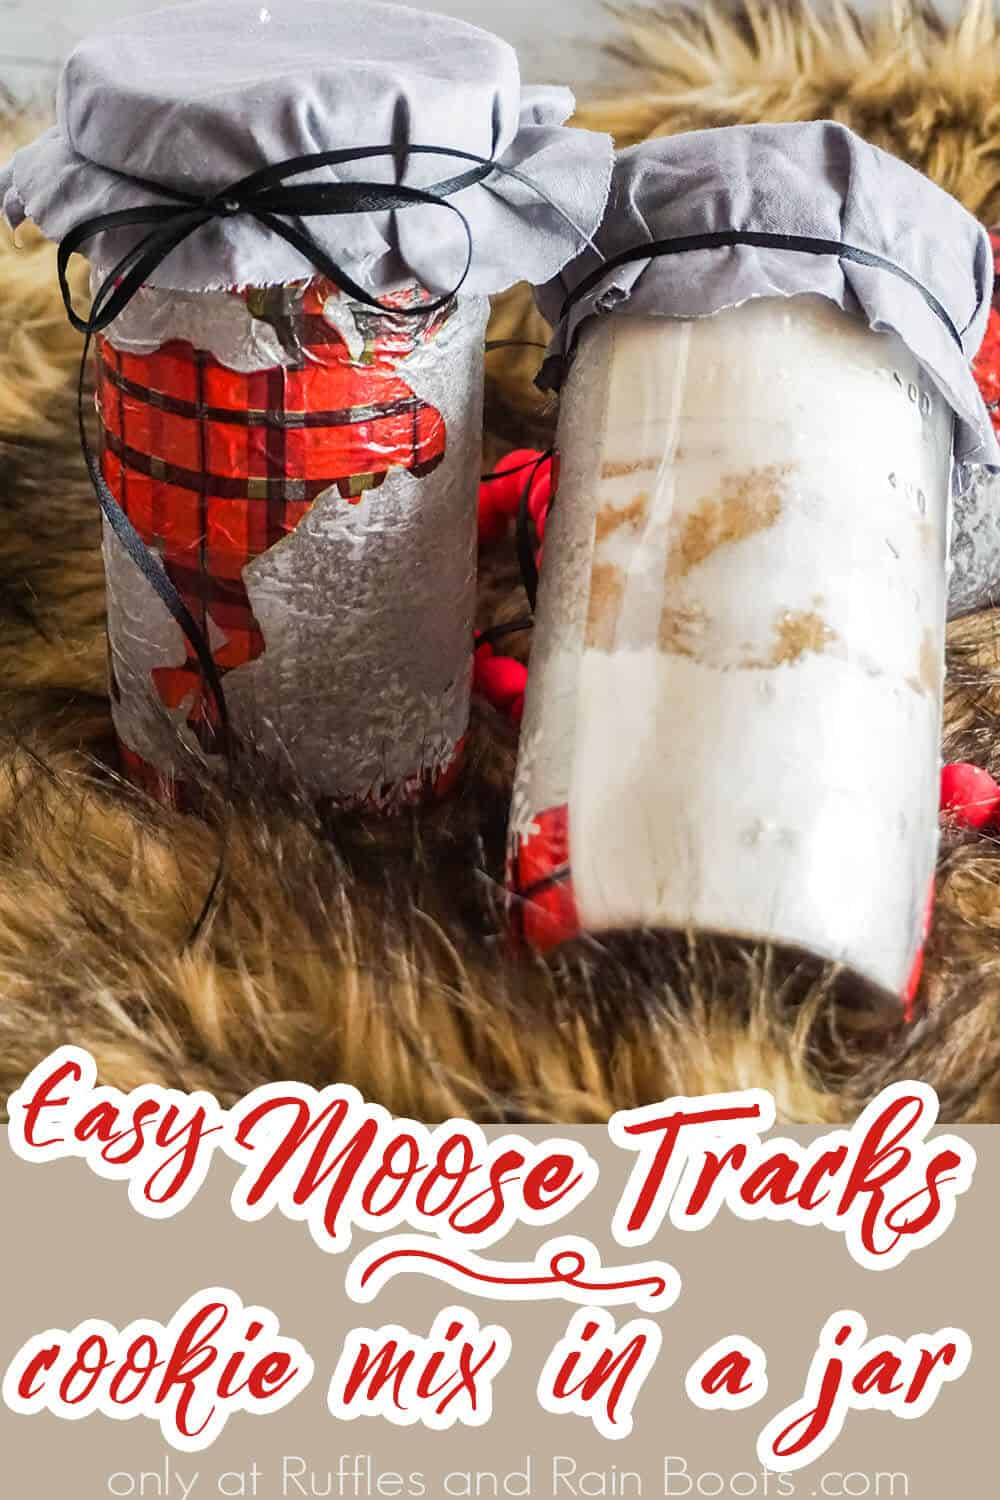 mason jar neighbor gift with text which reads easy moose tracks cookie mix in a jar